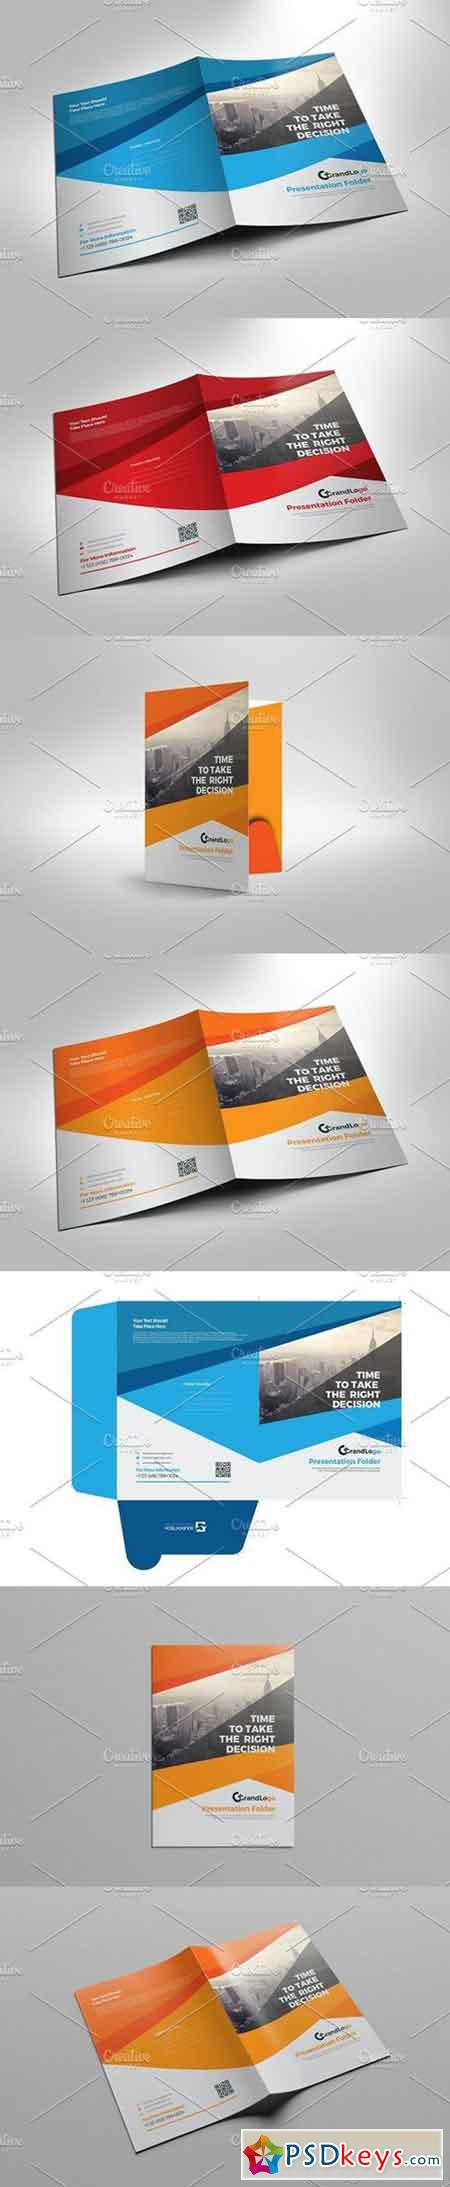 Presentation folder template 1151739 free download for Pocket folder template illustrator